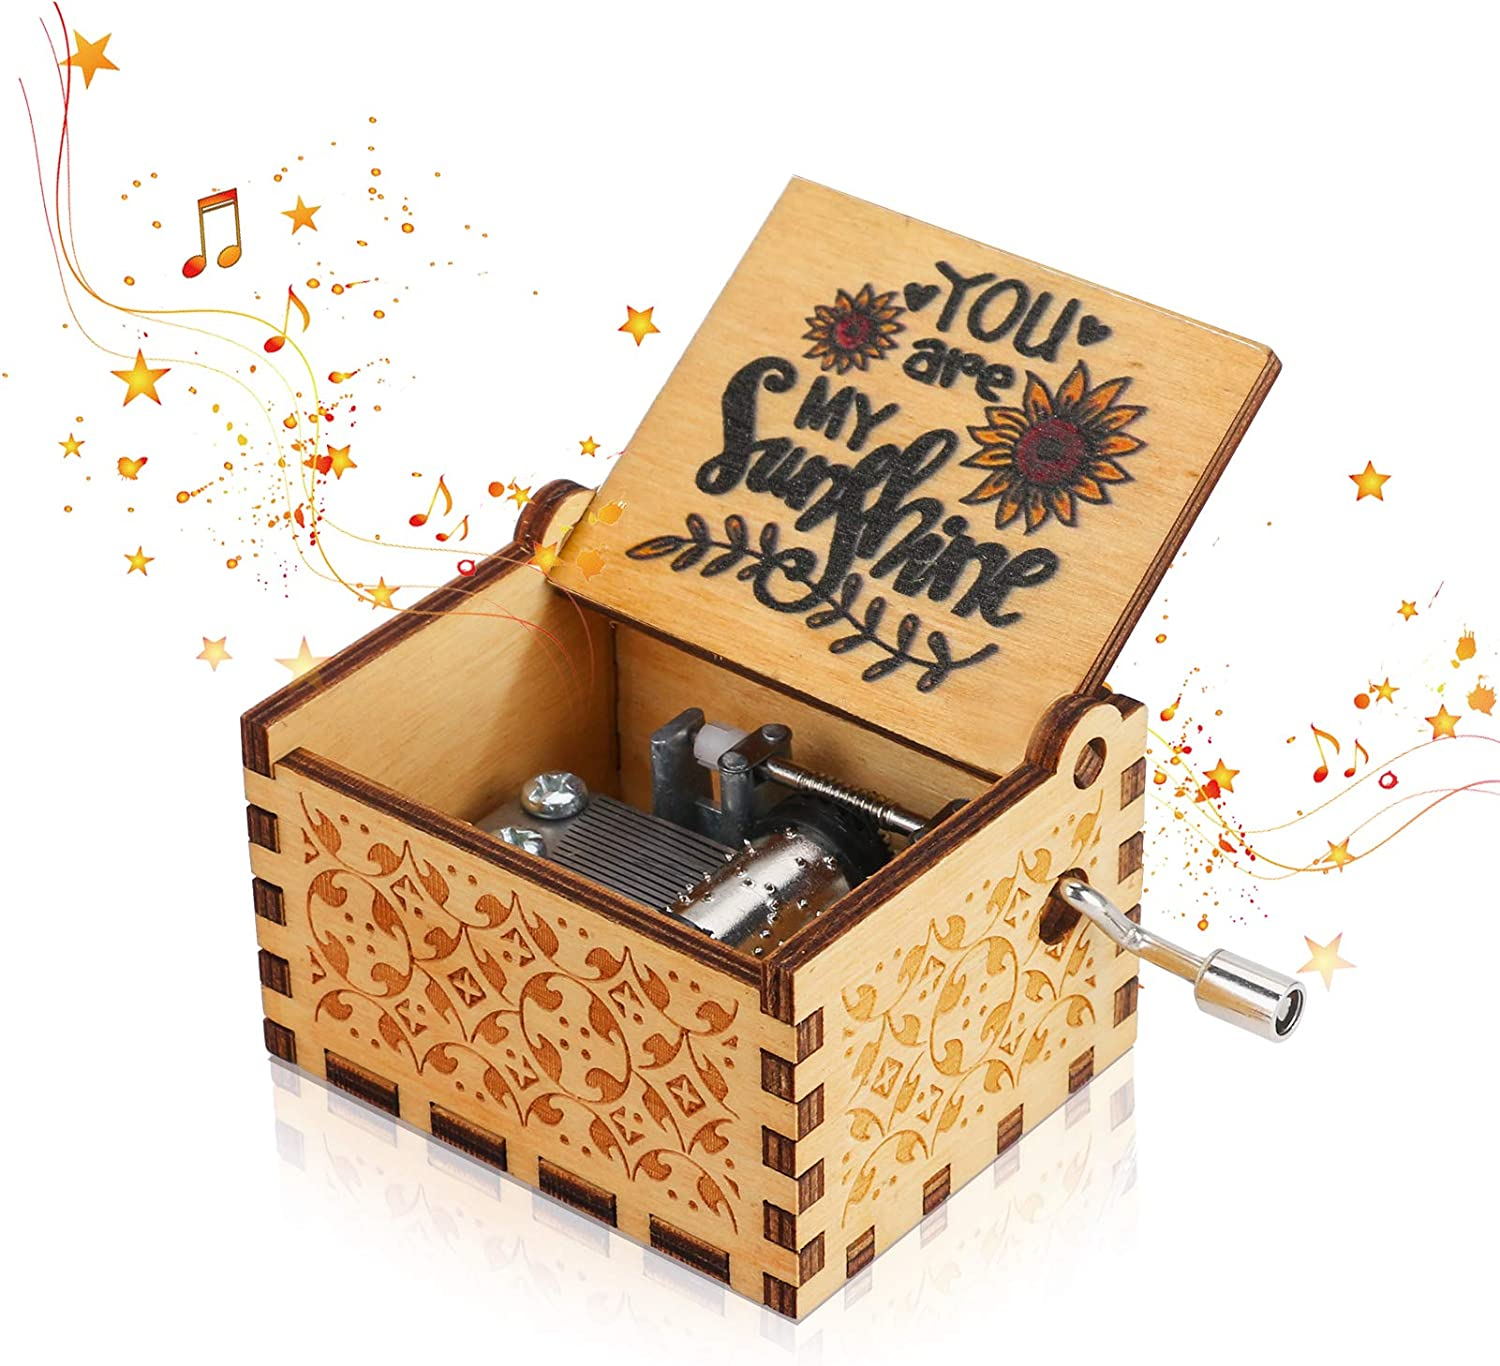 You are My Sunshine Wooden Music Box, BicycleStore Hand Crank Music Boxes Vintage Wooden Sunshine Classic Musical Box Cute Ornaments for Birthday/Valentines Day/Thanksgiving Day/Christmas